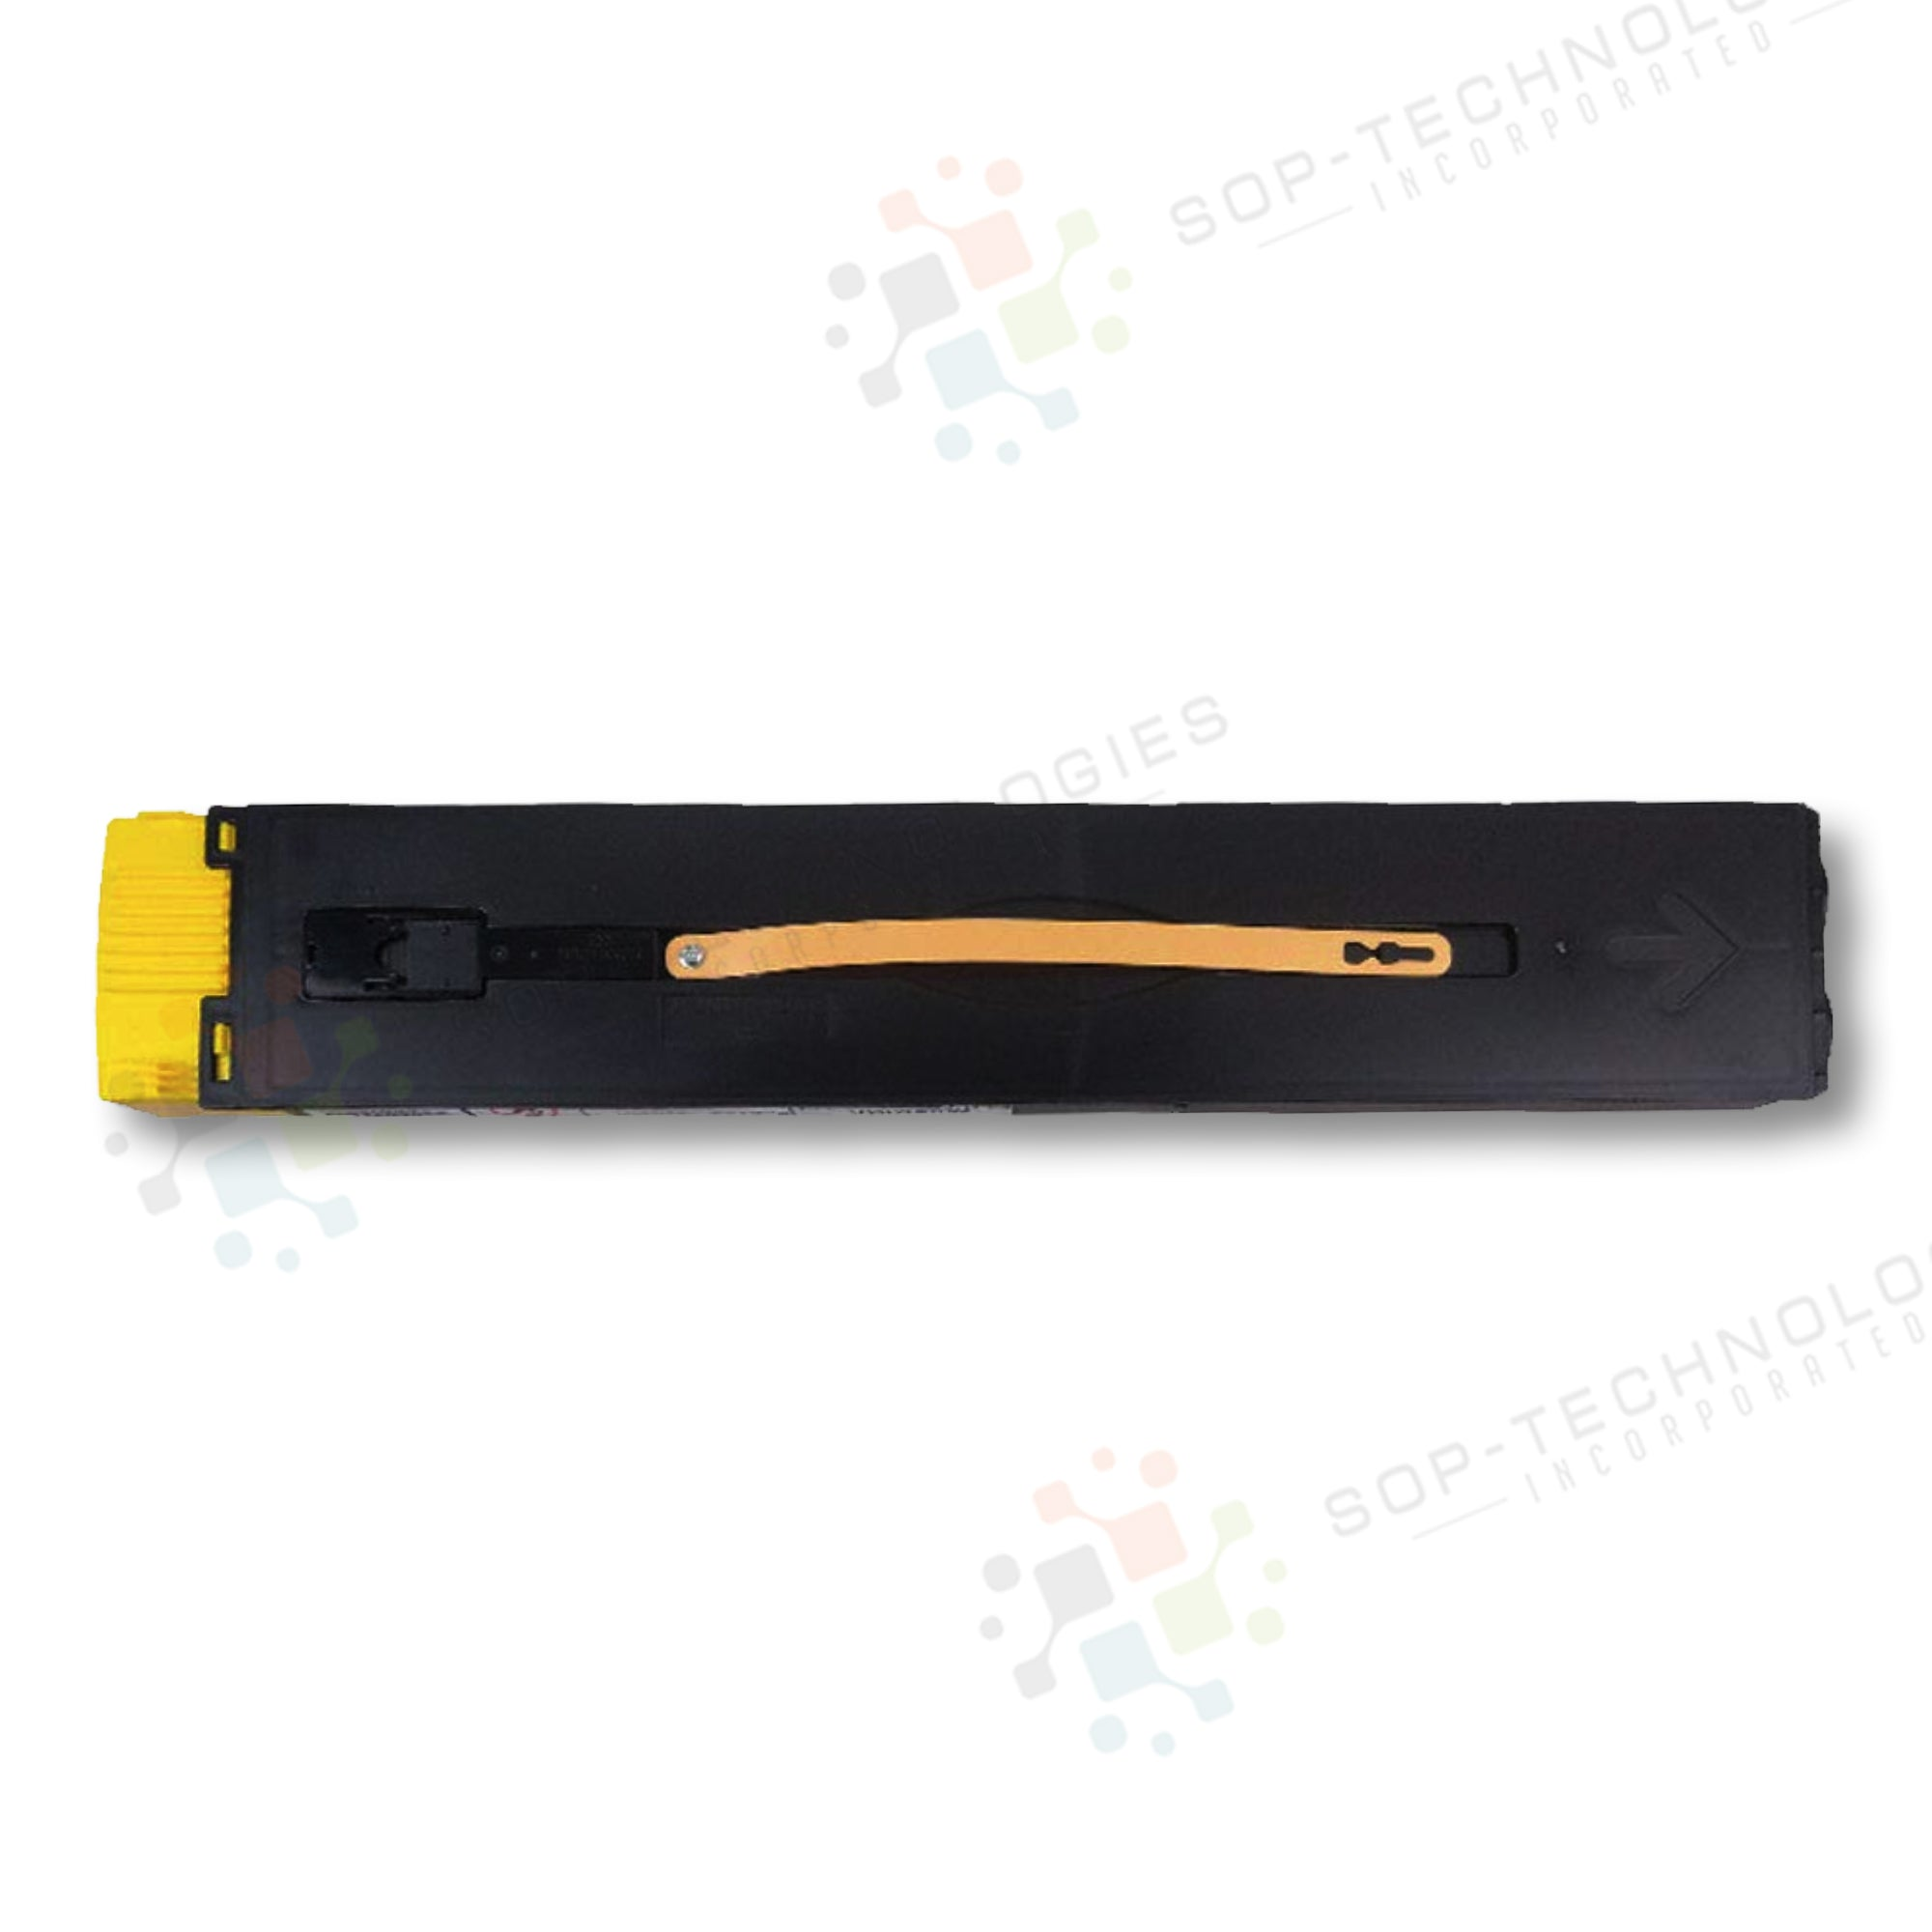 Xerox 700 J75 Toner 006R01383 - 006R01386 (JAPAN Powder) NON-OEM YELLOW - SOP-TECHNOLOGIES, INC.